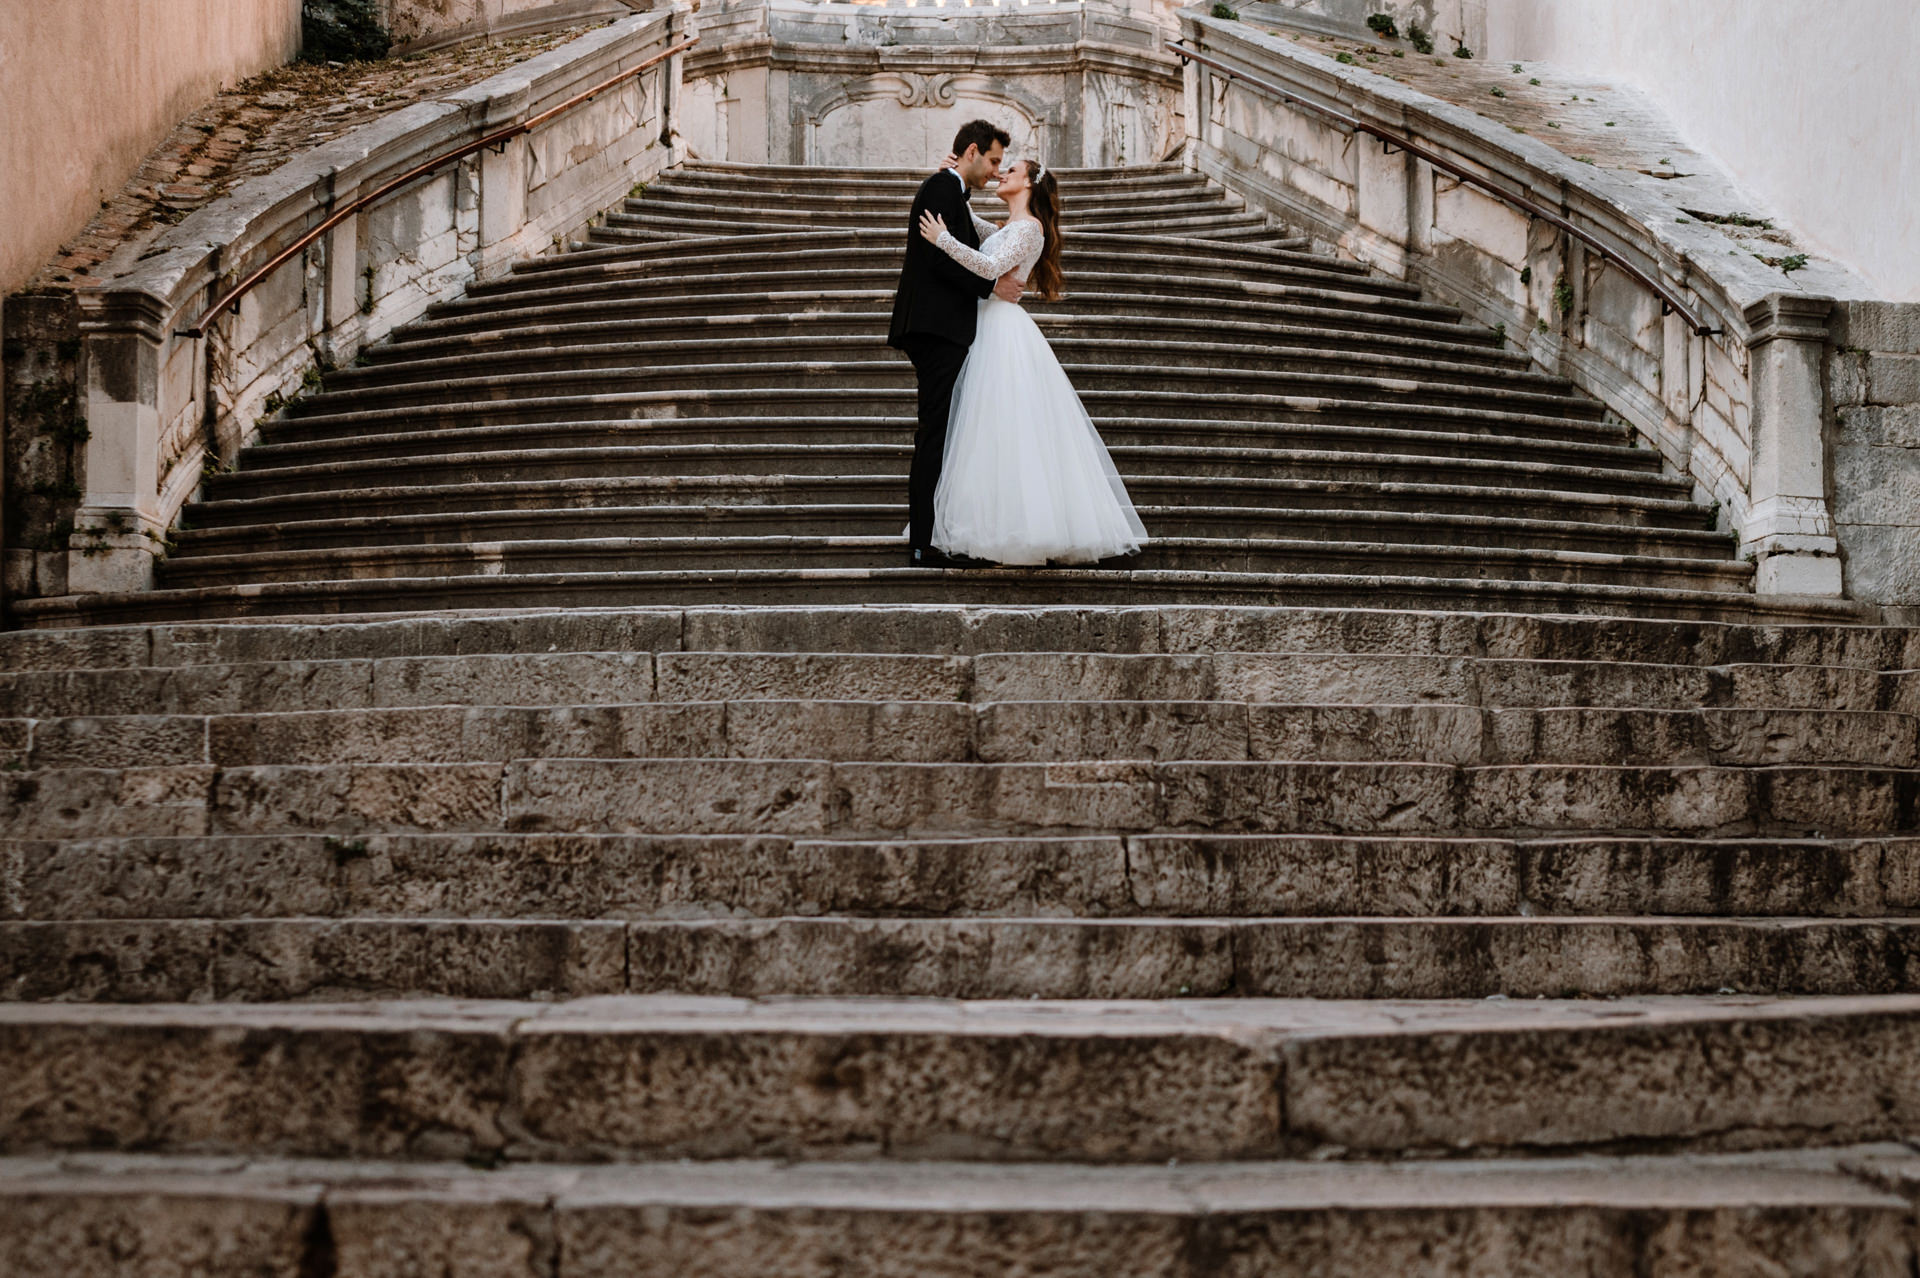 bride and groom standing together at the stairs poplular kings landing in the games of thrones